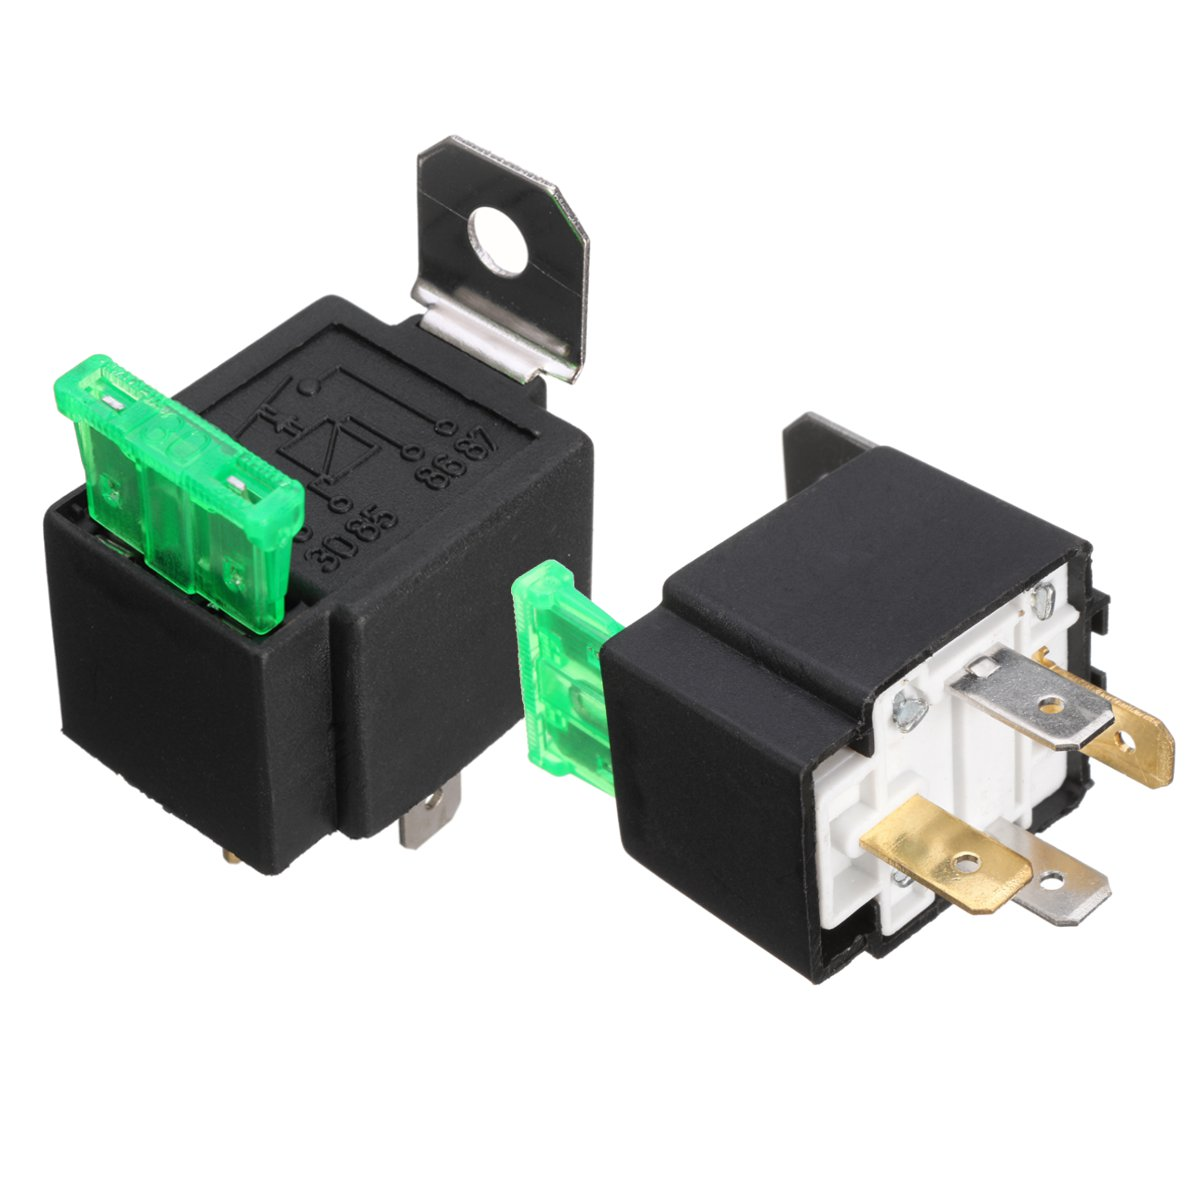 30 Amp Fuse Box Under Hood Wiring Library A Wire 2x Dc 12v On Off 4 Pin Relay Base Holder Bracket